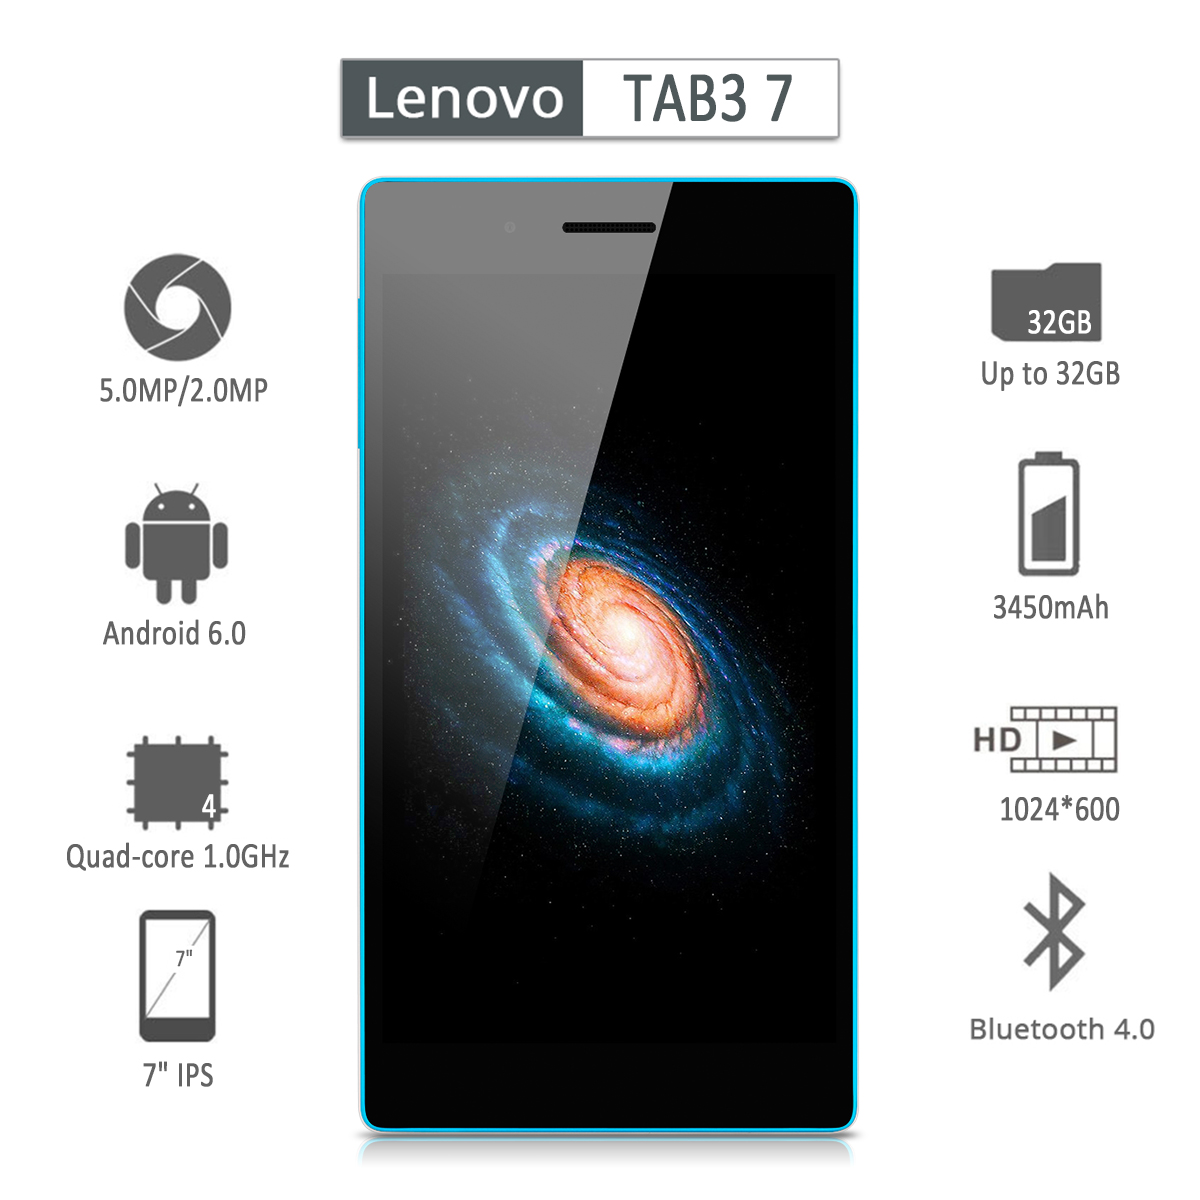 Lenovo TAB3  IPS Tablet Smartphone Android 6.0 MTK MT8735P Quad-core 1.0GHz 3450mAh 1GB RAM+16GB ROM Up to 32GB Dual SIM Double Standby